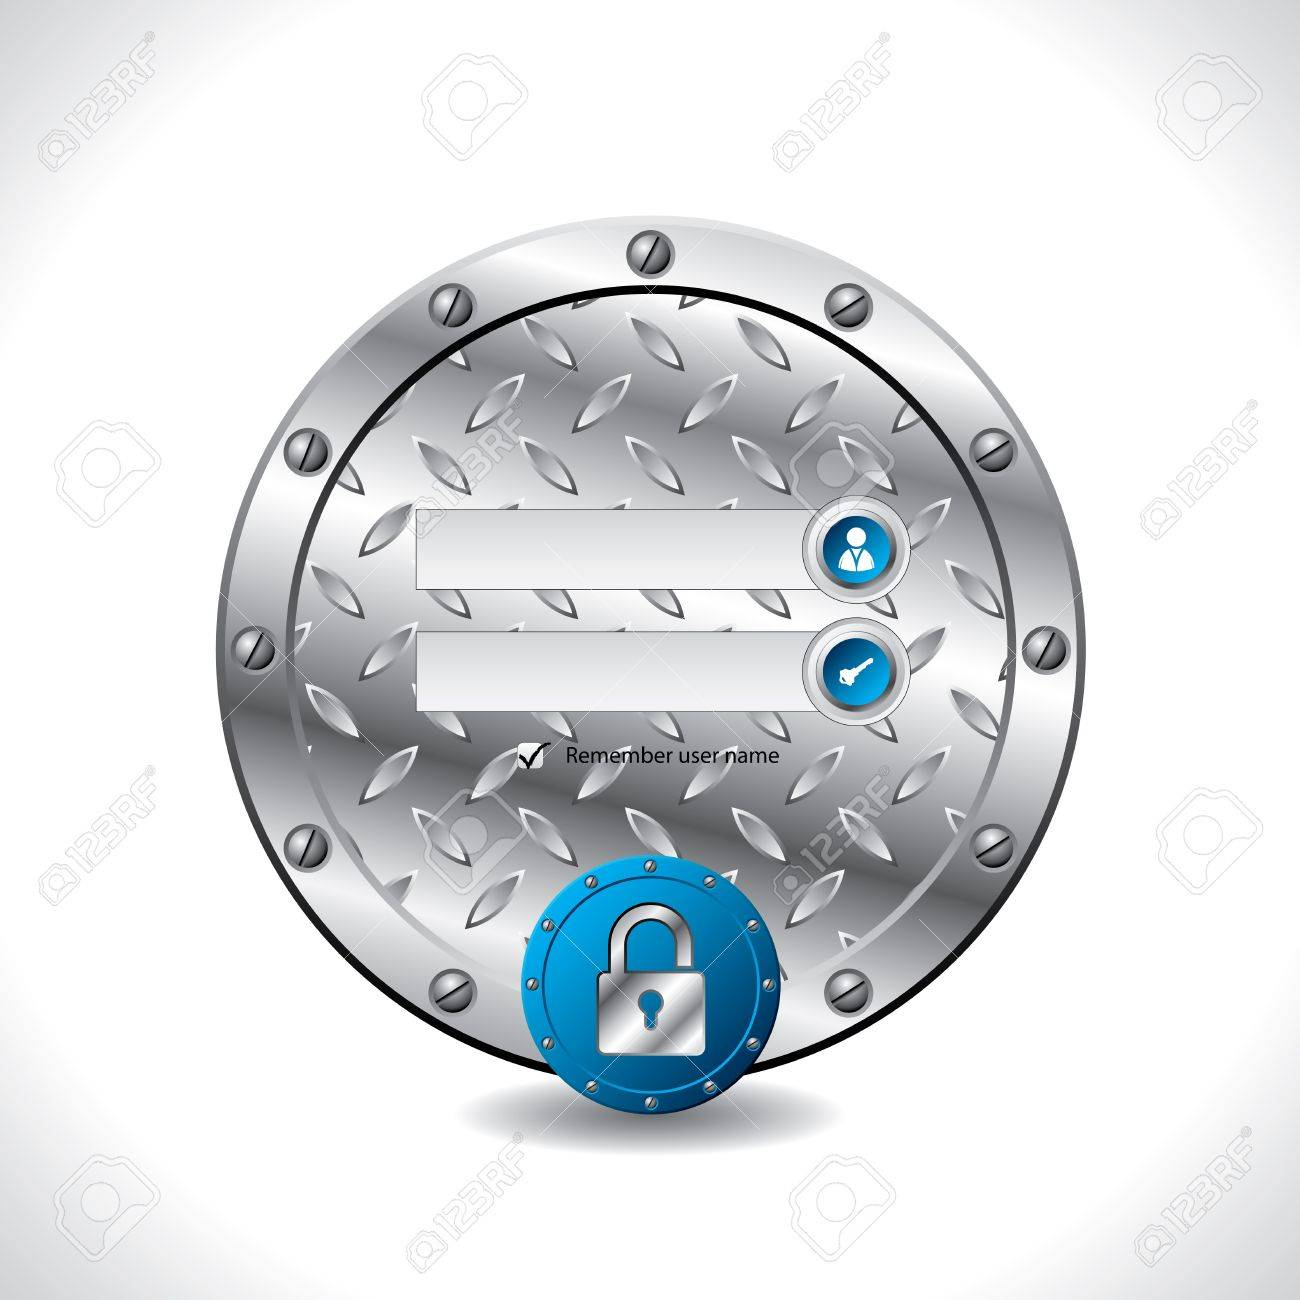 Abstract industrial login screen design with padlock button Stock Vector - 15424347